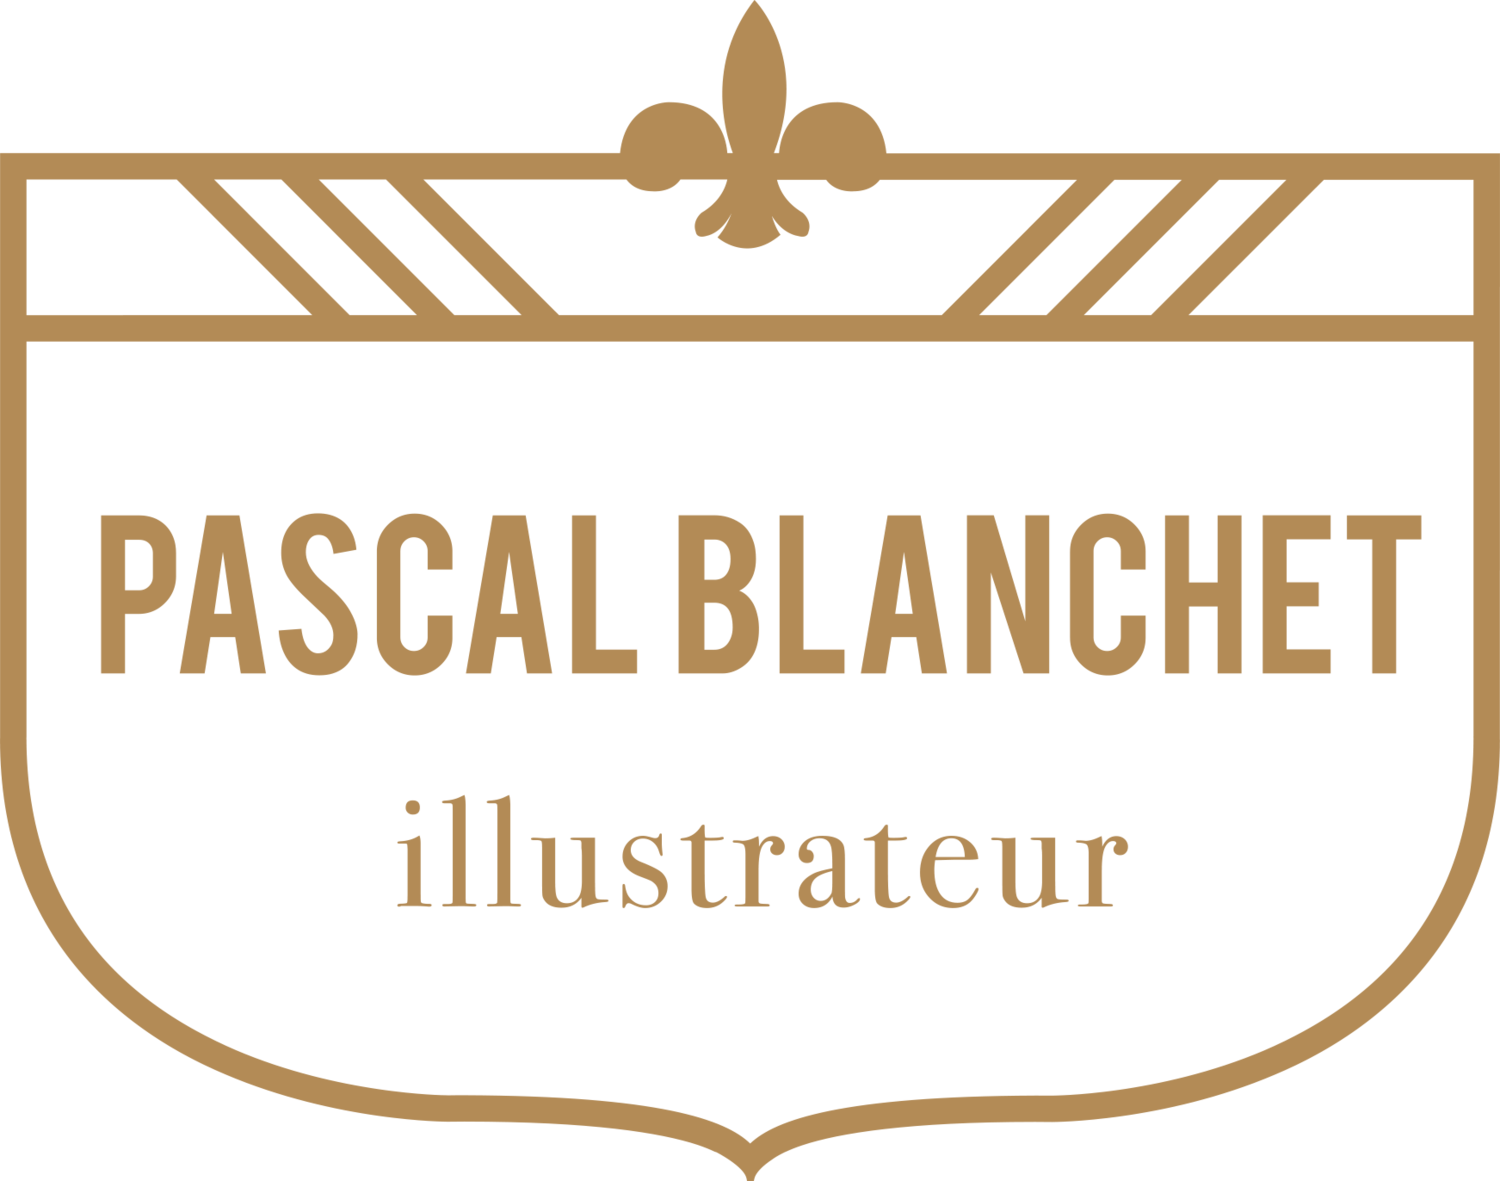 PASCAL BLANCHET